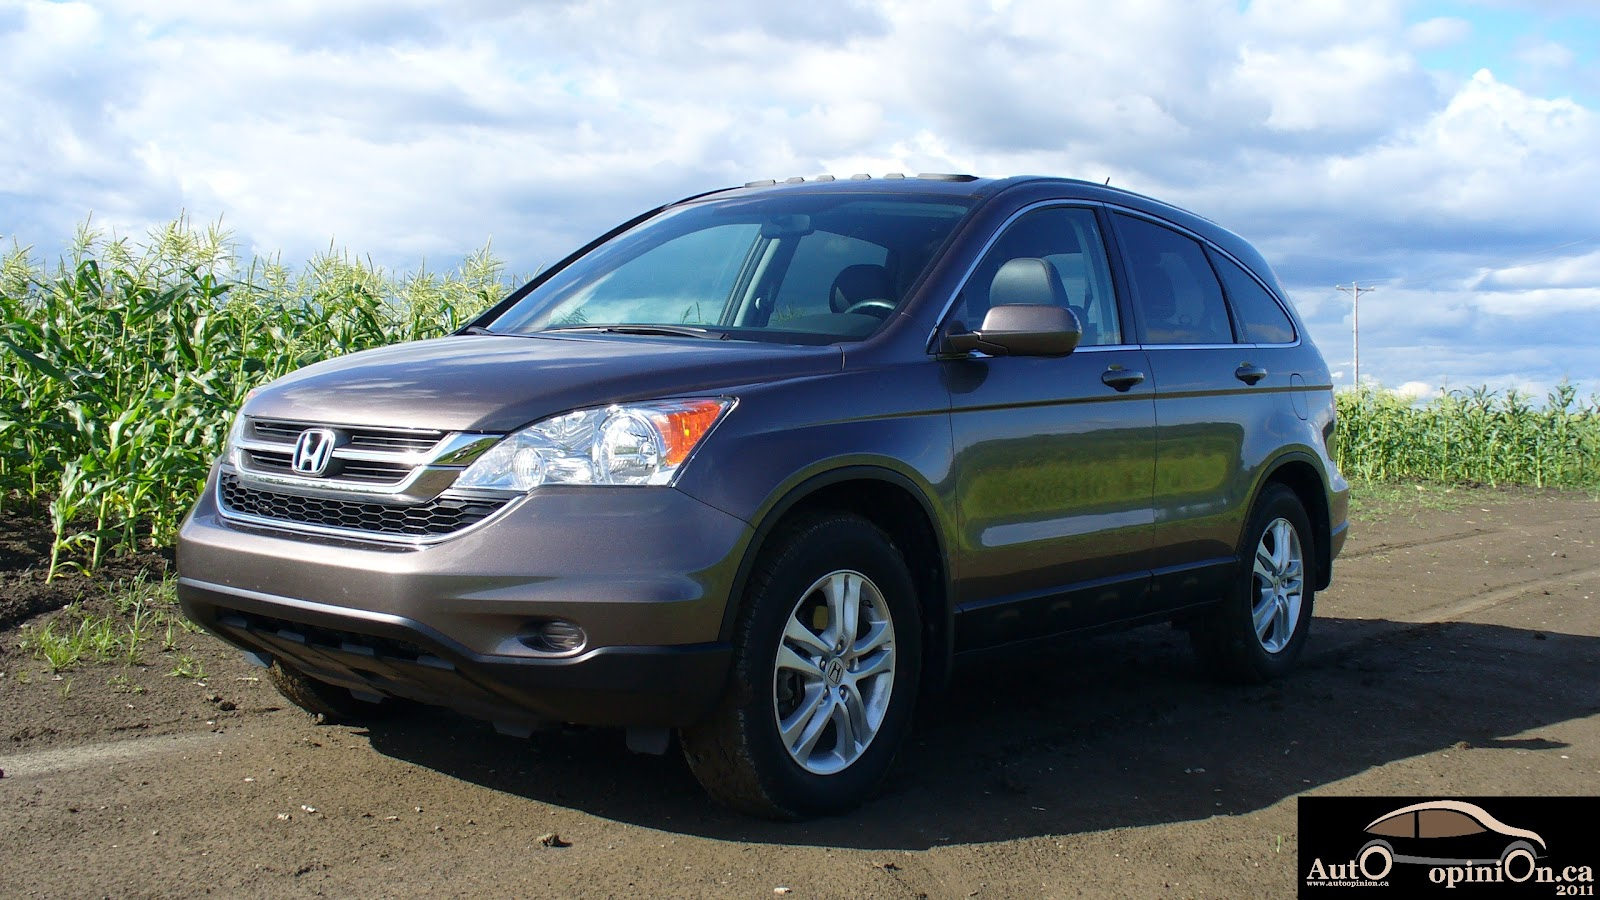 Honda cr v 2011 vs subaru forester 2011 essais routiers for Honda crv vs subaru forester